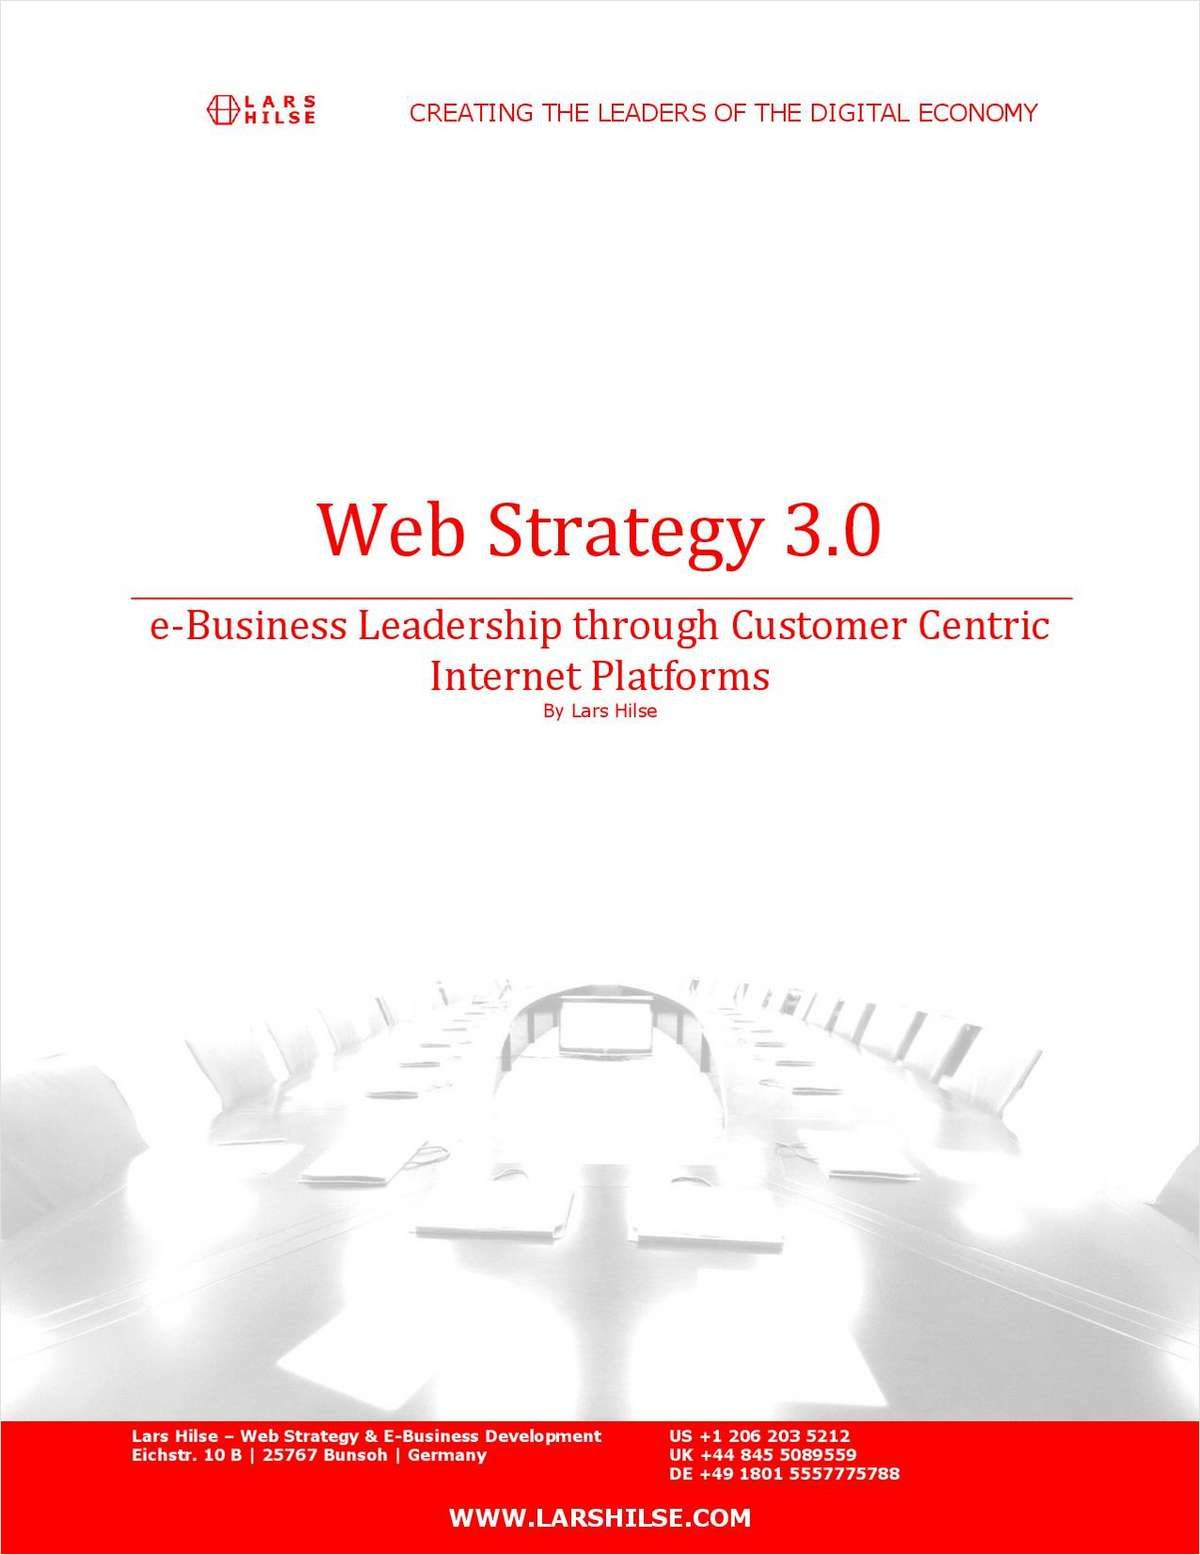 Web Strategy 3.0: e-Business Leadership through Customer Centric Internet Platforms - Free 24 Page eBook